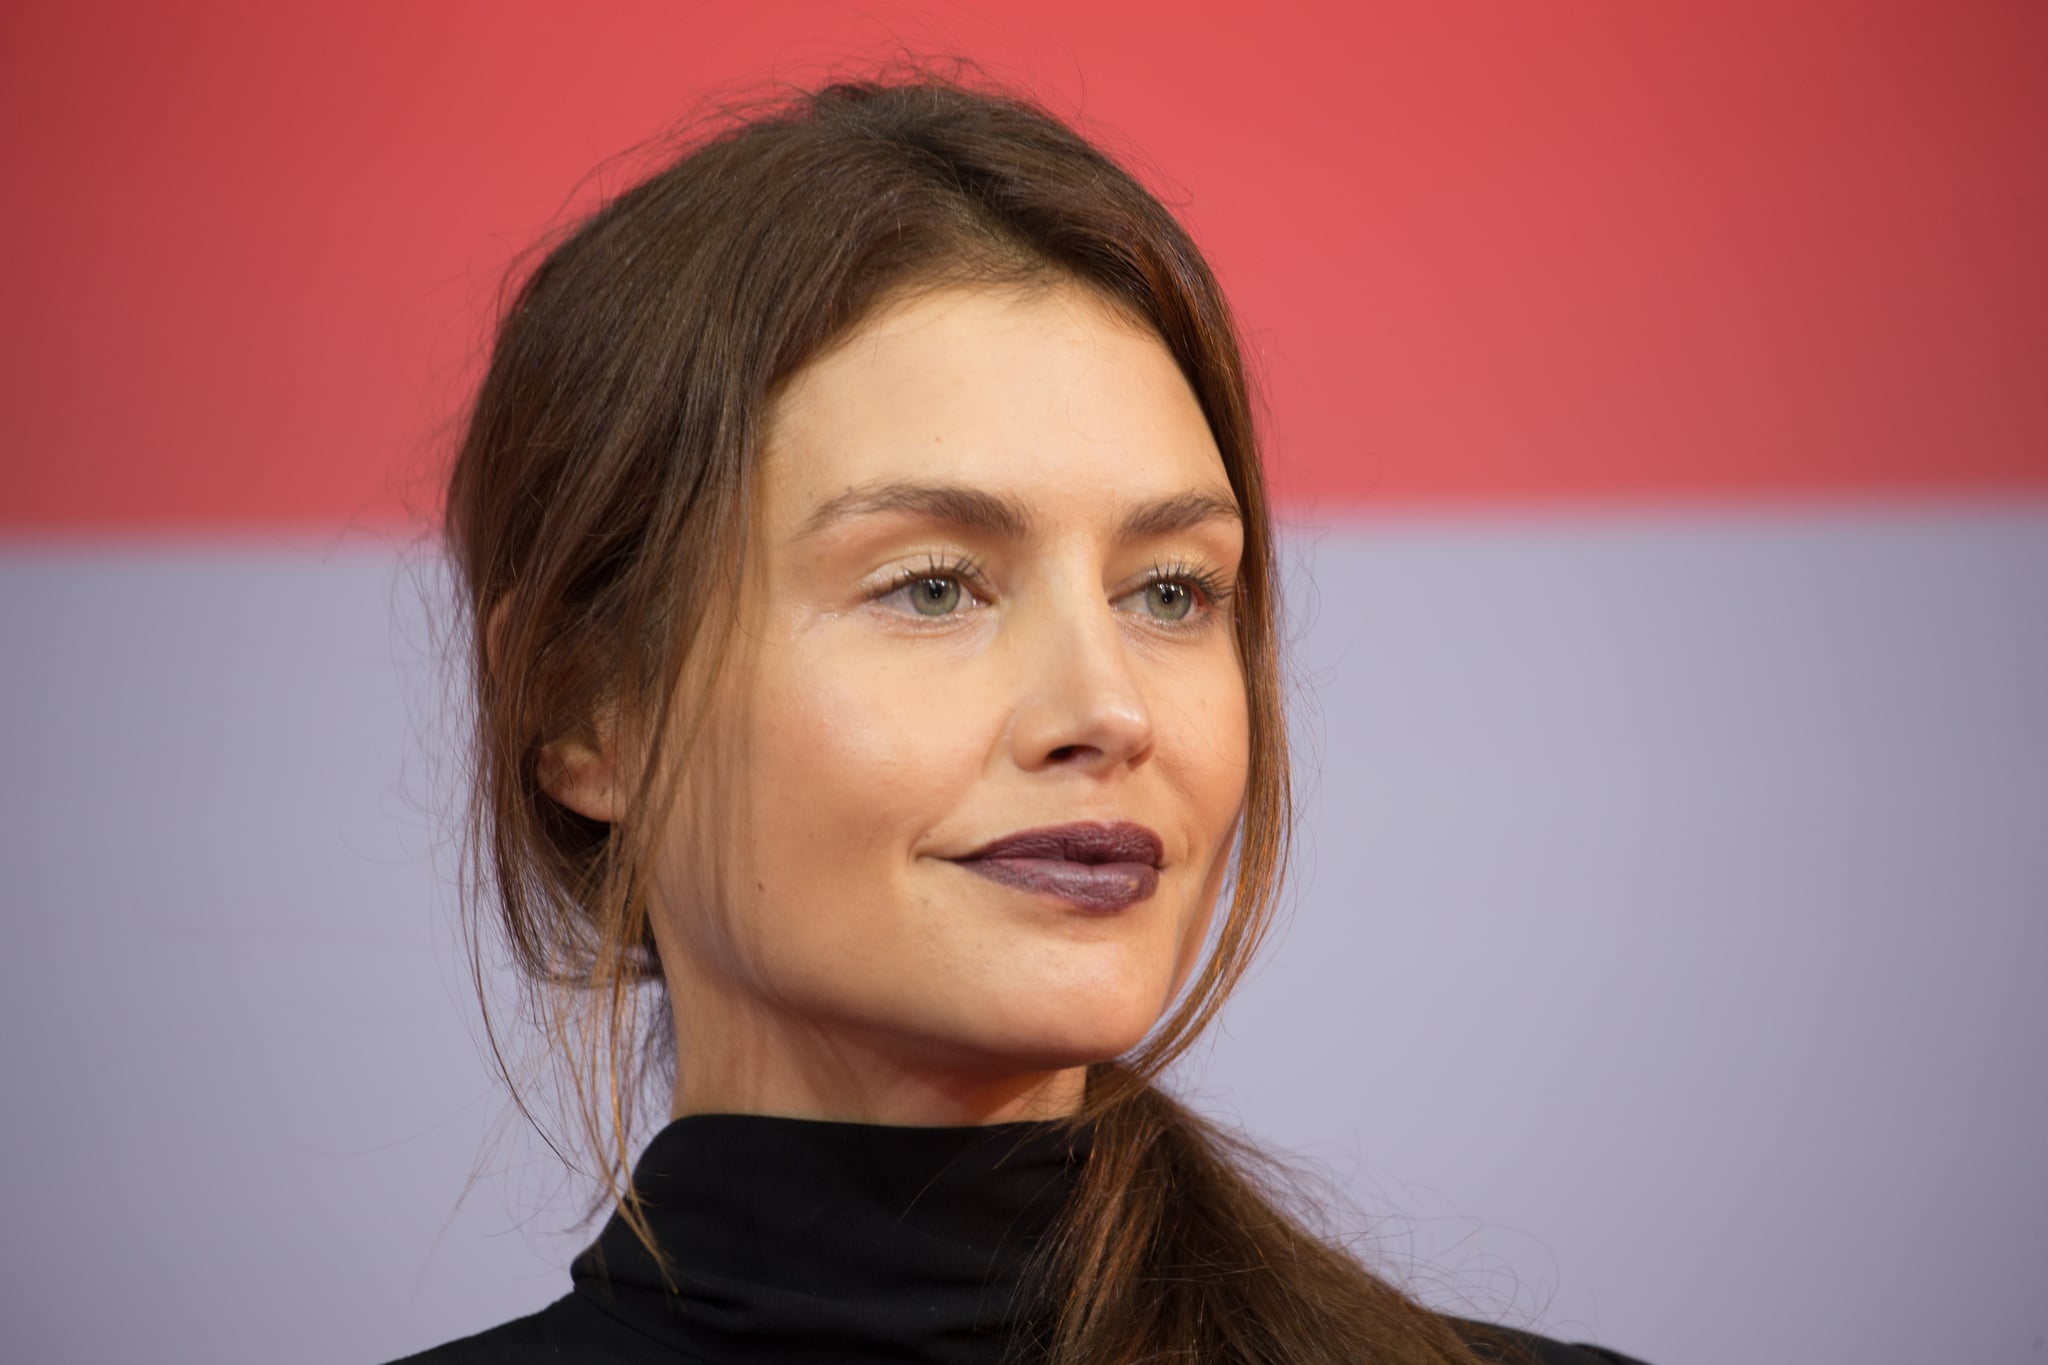 BERLIN, GERMANY - AUGUST 19:  Hannah Ware attends the 'Hitman - Agent 47' world premiere at CineStar on August 19, 2015 in Berlin, Germany.  (Photo by Luca Teuchmann/Getty Images)